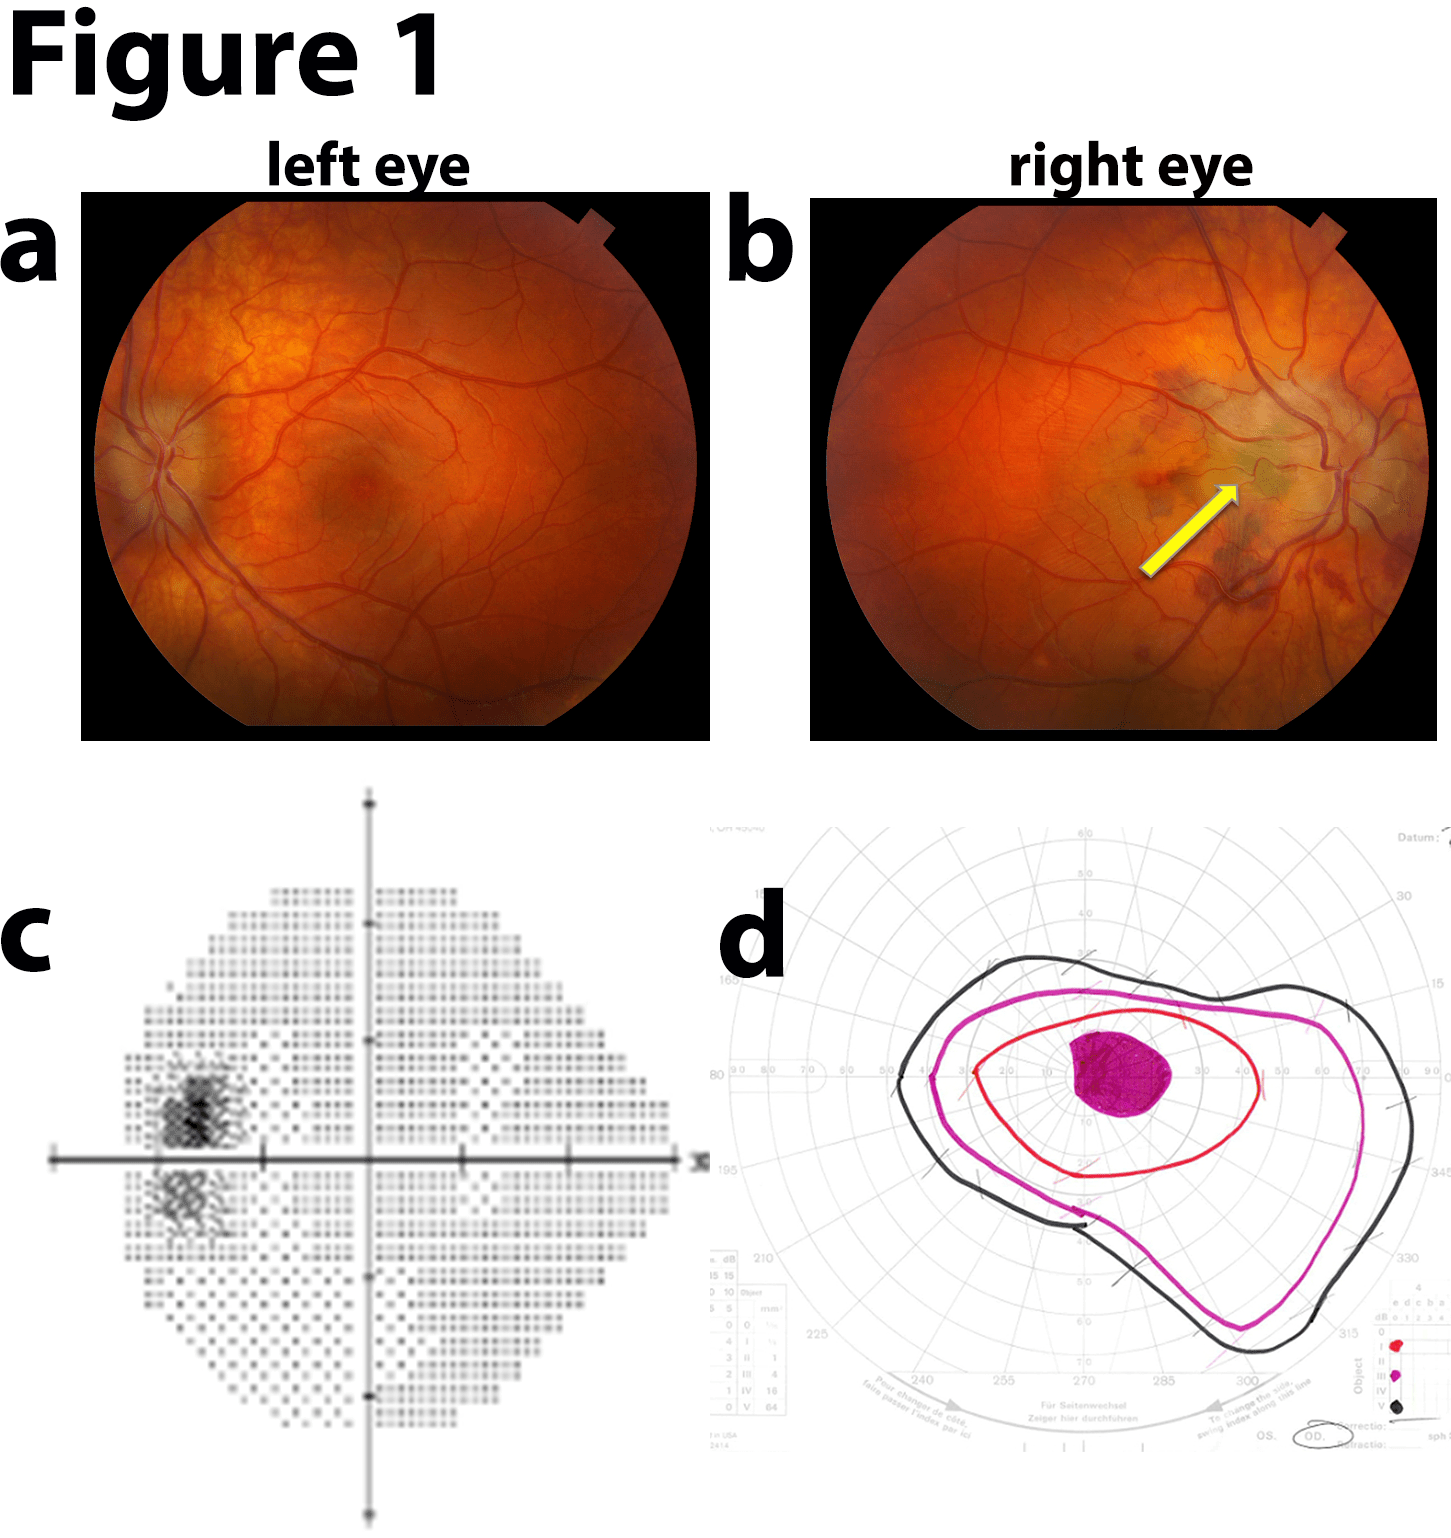 hight resolution of within a few months vision returned in the right eye to 20 40 with significant improvement of cecocentral scotoma and resolution of the subretinal fluid